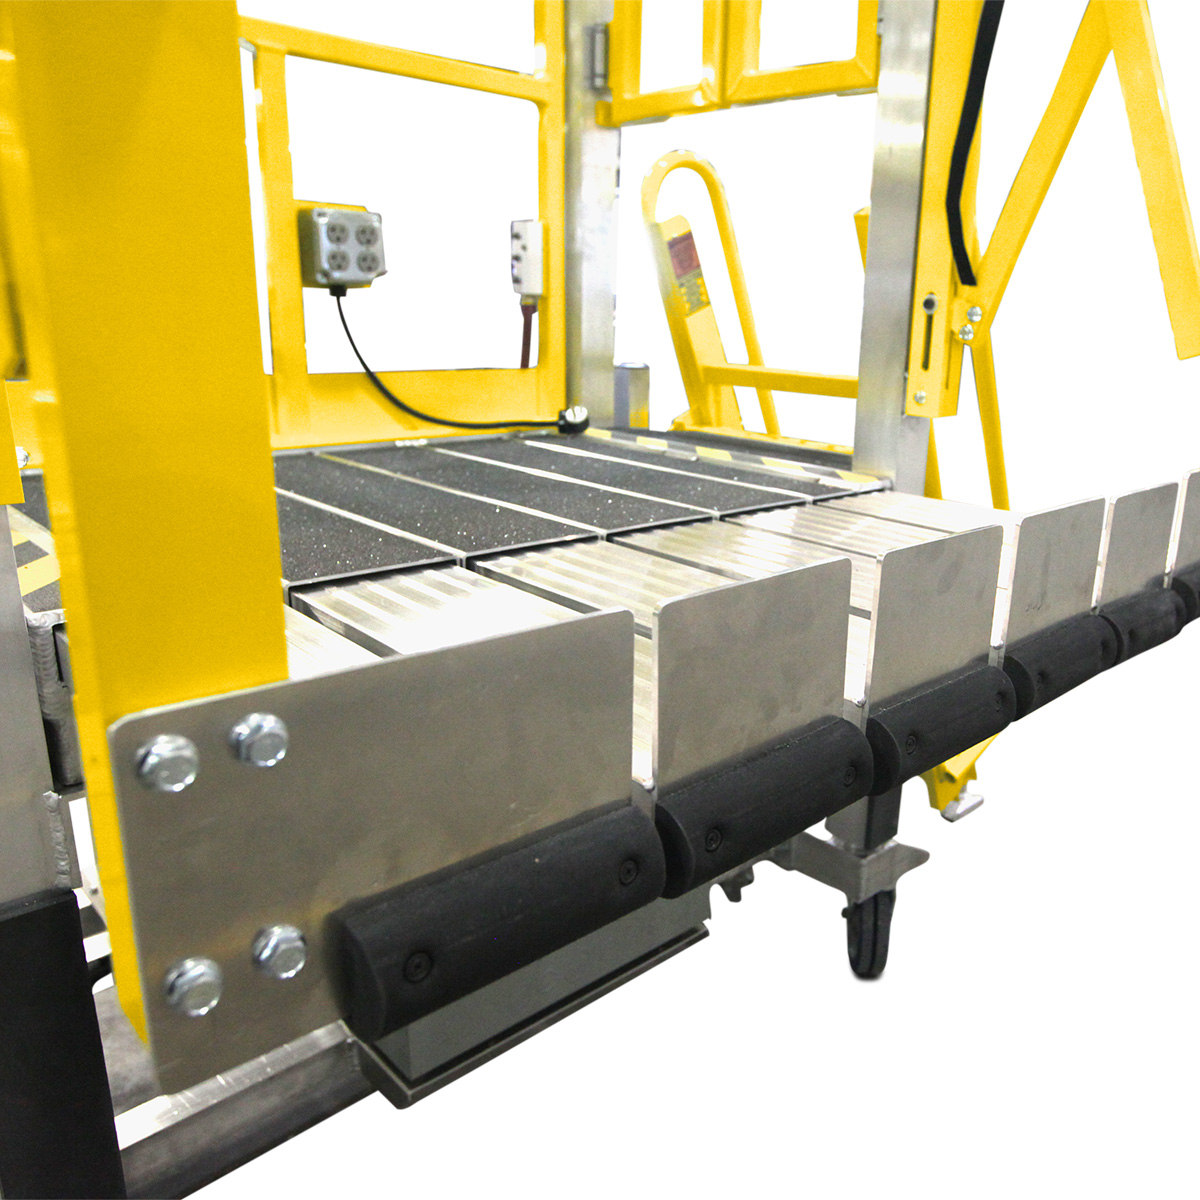 CH-47 Chinook Helicopter – Daily Maintenance OSHA compliant toeboards for portable aluminum work platforms and deck extensions for cantilever overreach access.